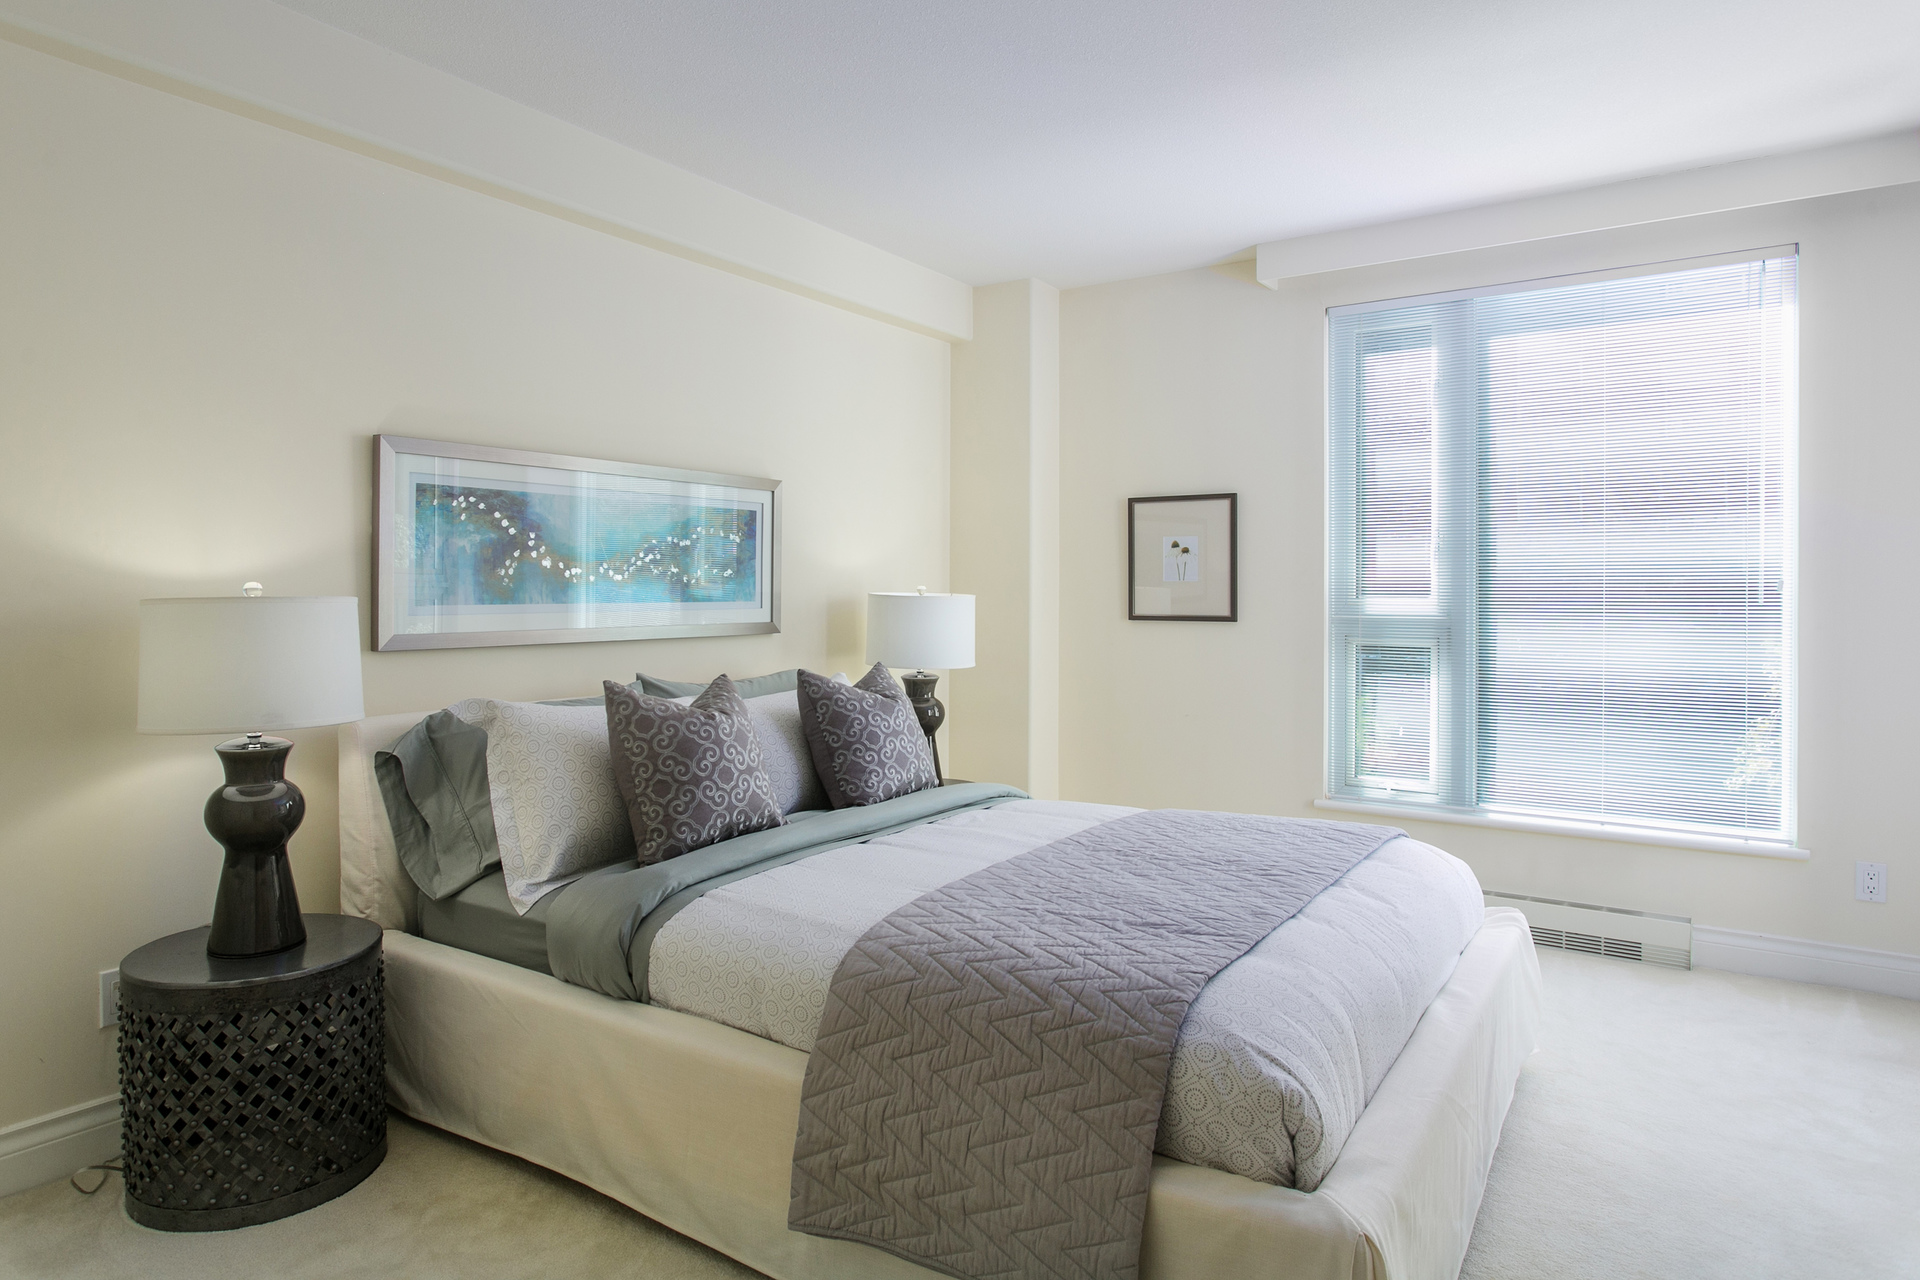 1j6a7513 at 401 - 535 Nicola, Coal Harbour, Vancouver West